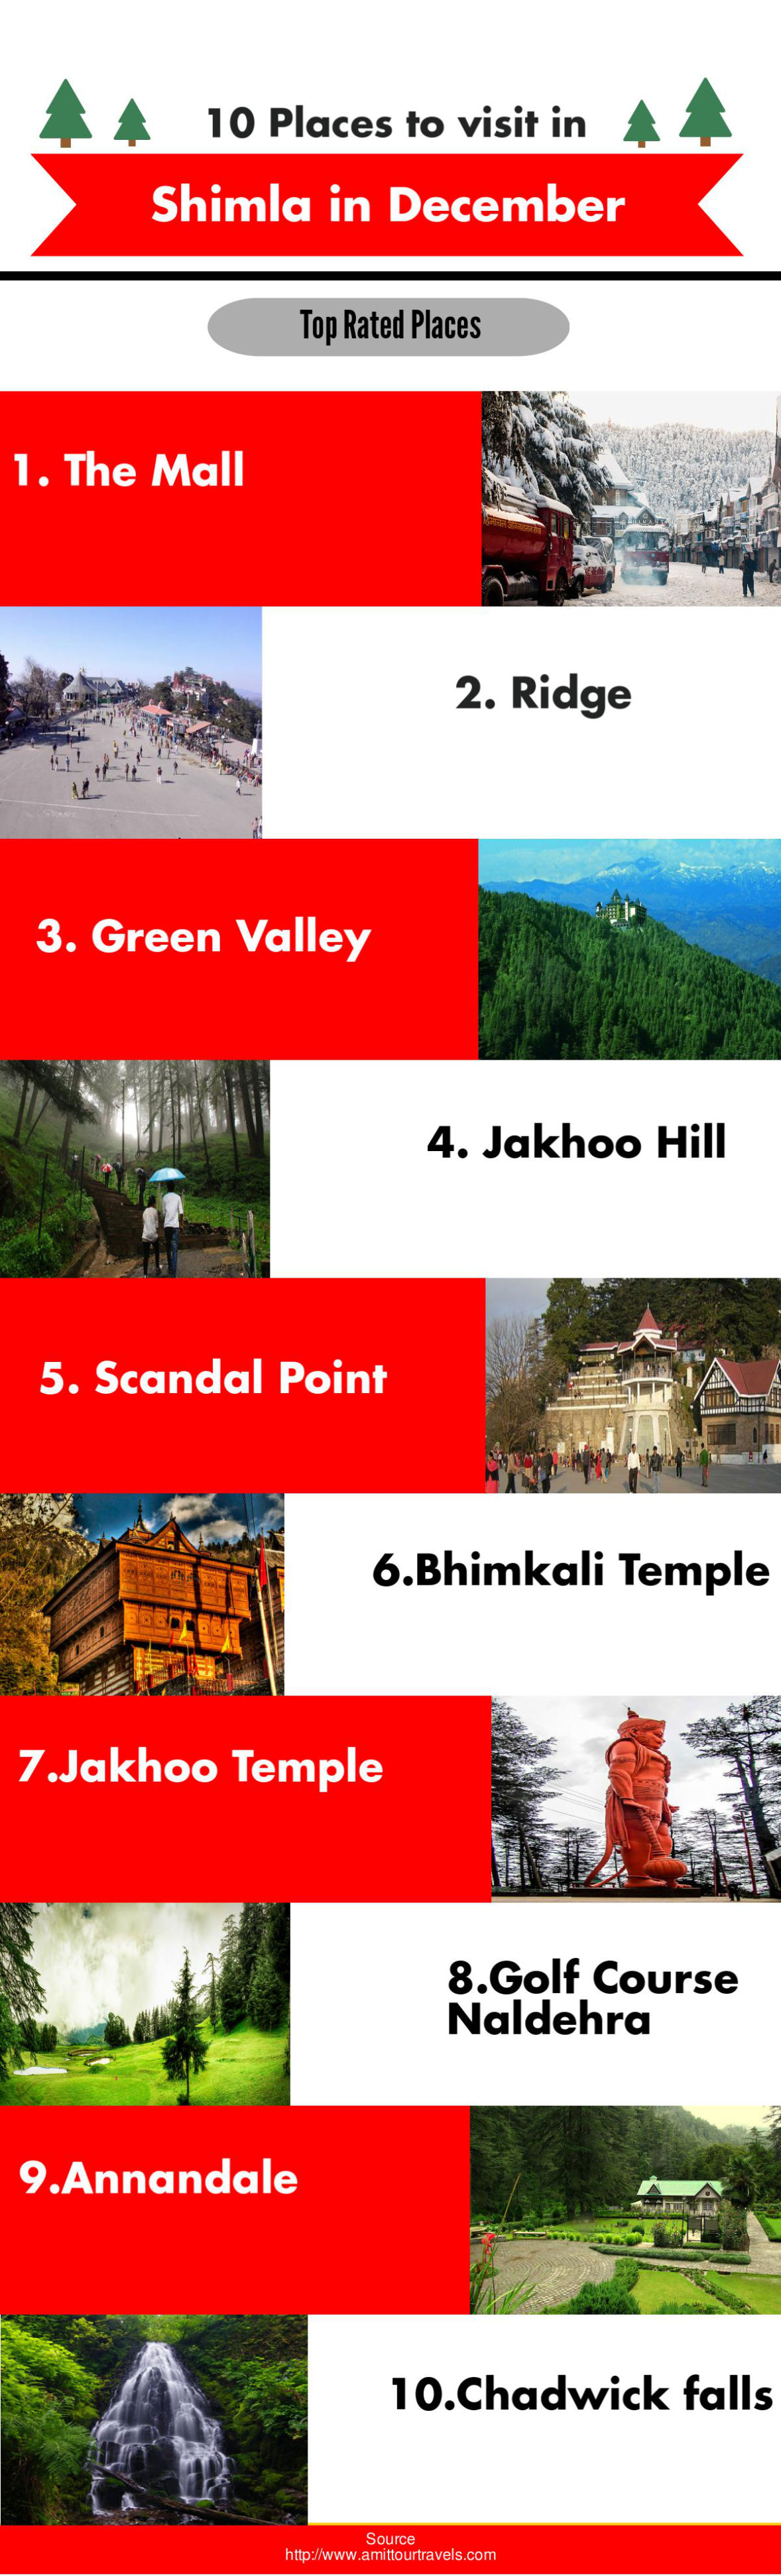 10 Places To Visit in Shimla in December